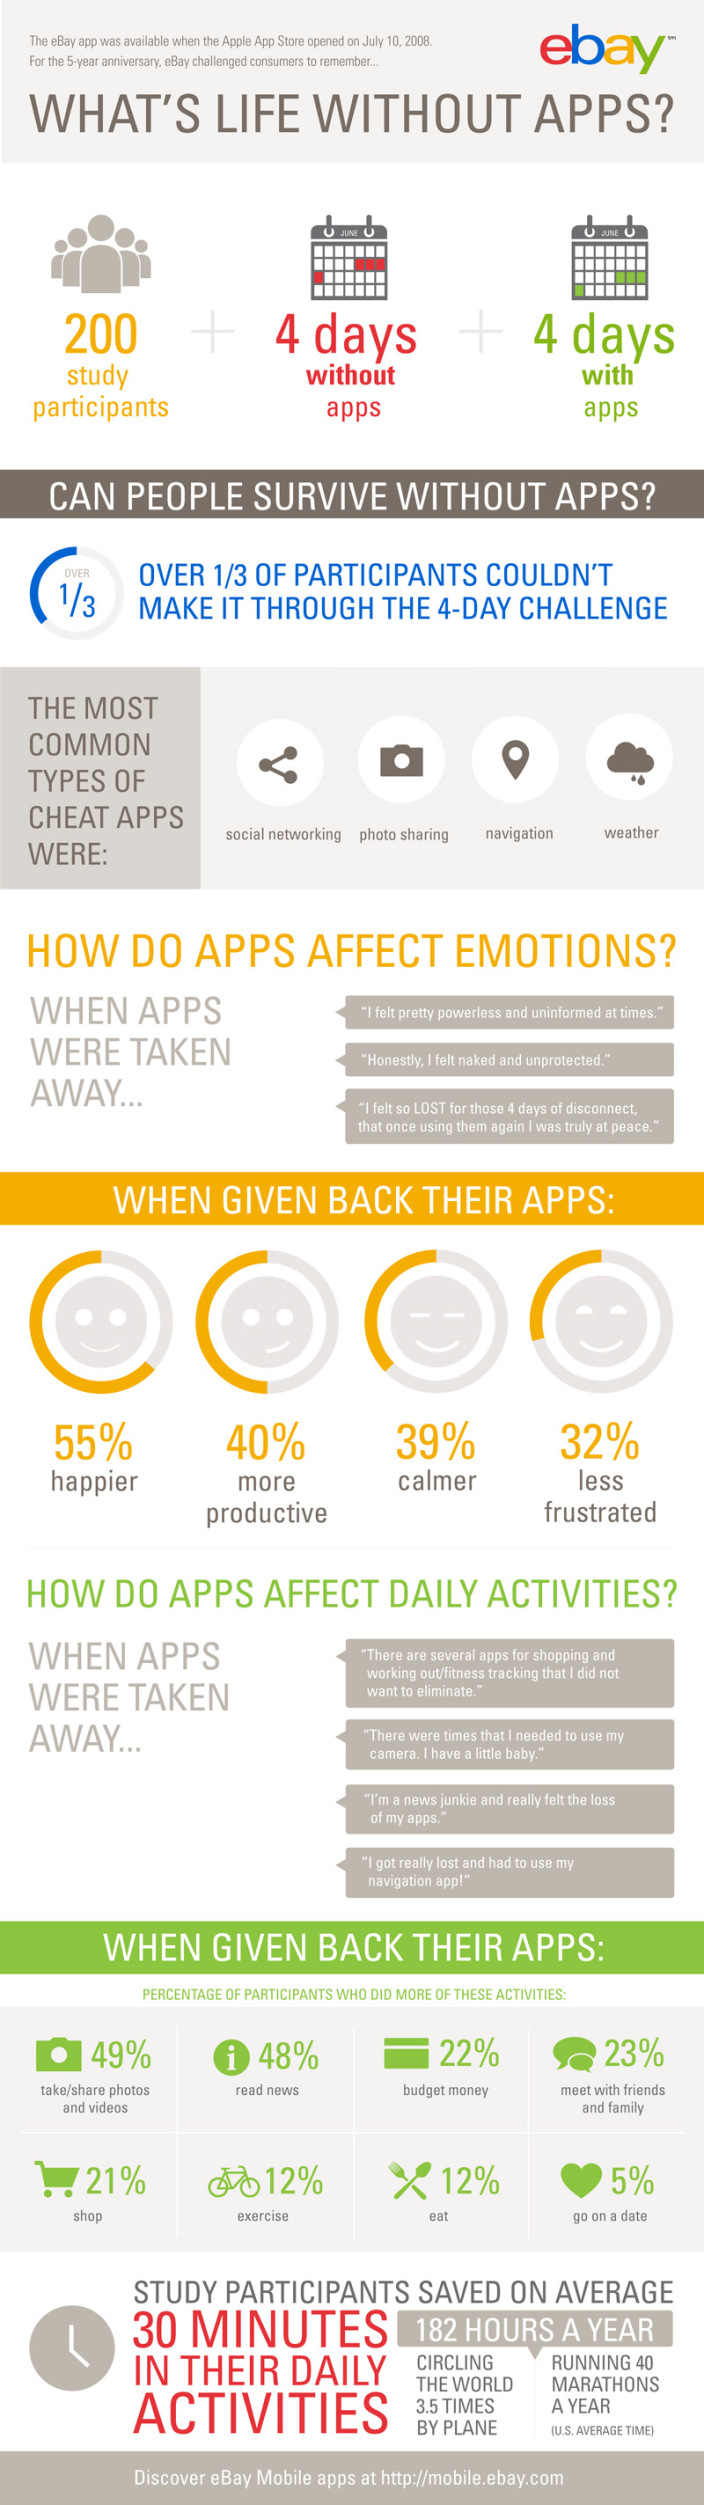 9. Could-you-survive-four-days-without-apps